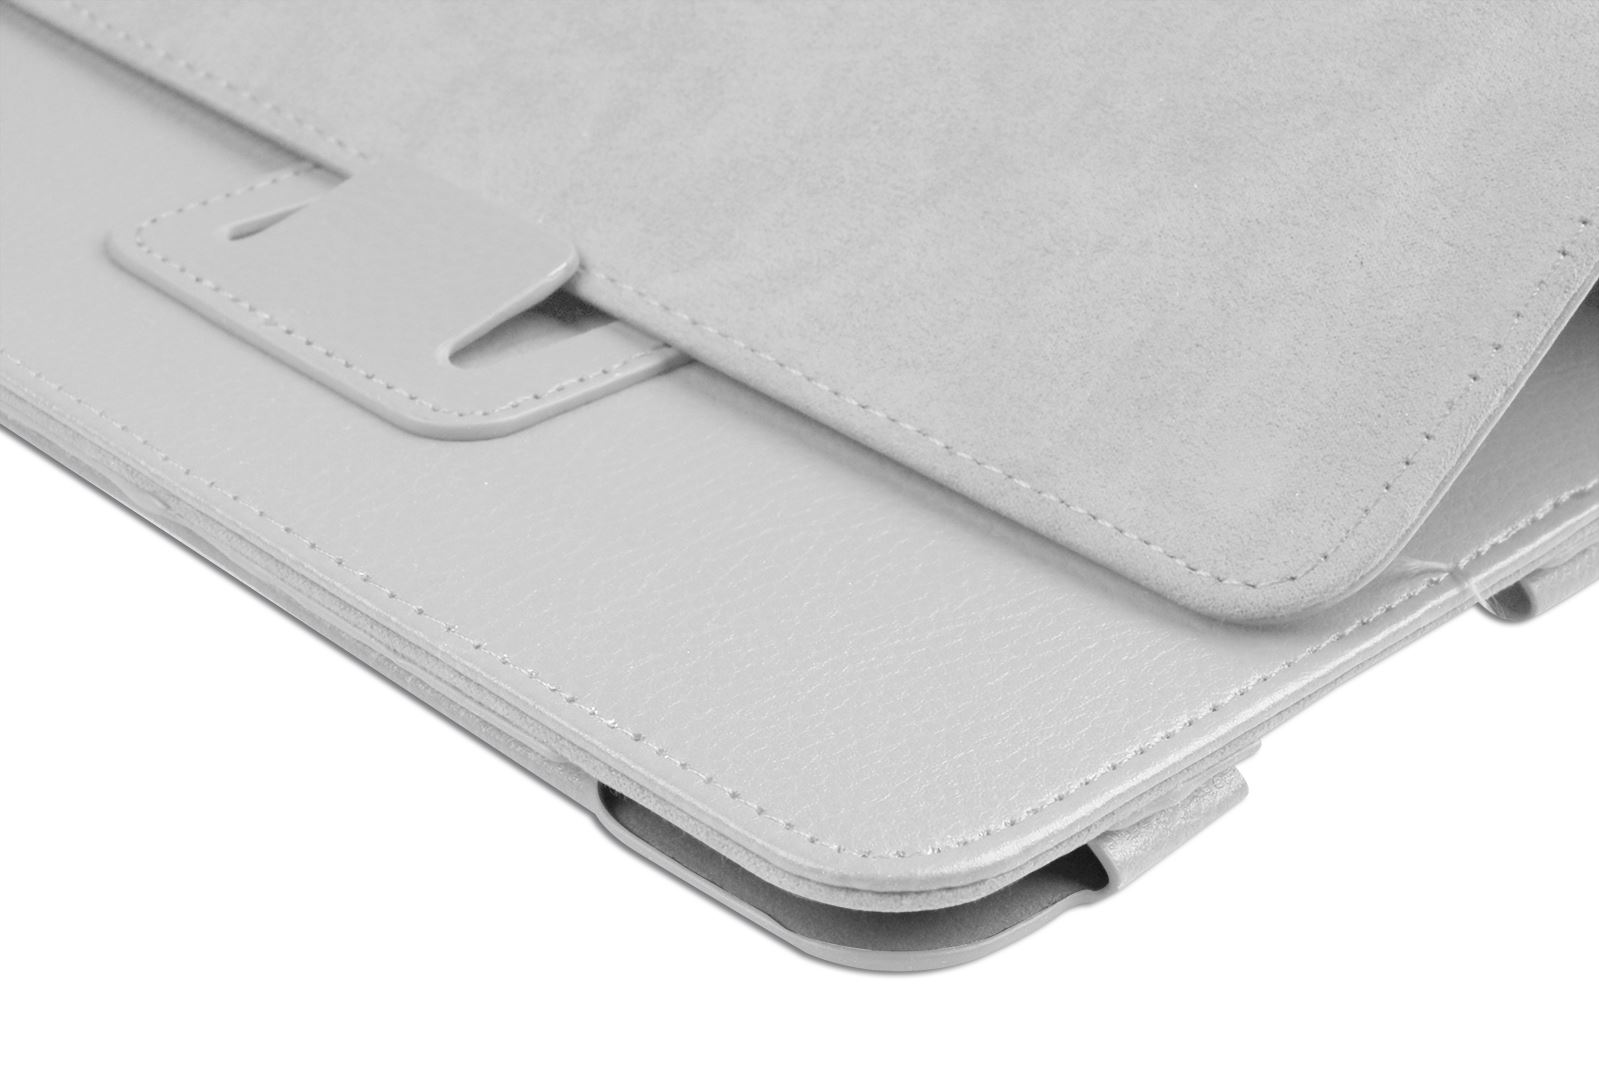 Hellfire-Trading-Magnetic-PU-Leather-Case-Cover-for-Lenovo-IdeaTab-A8-50-A5500 Indexbild 35